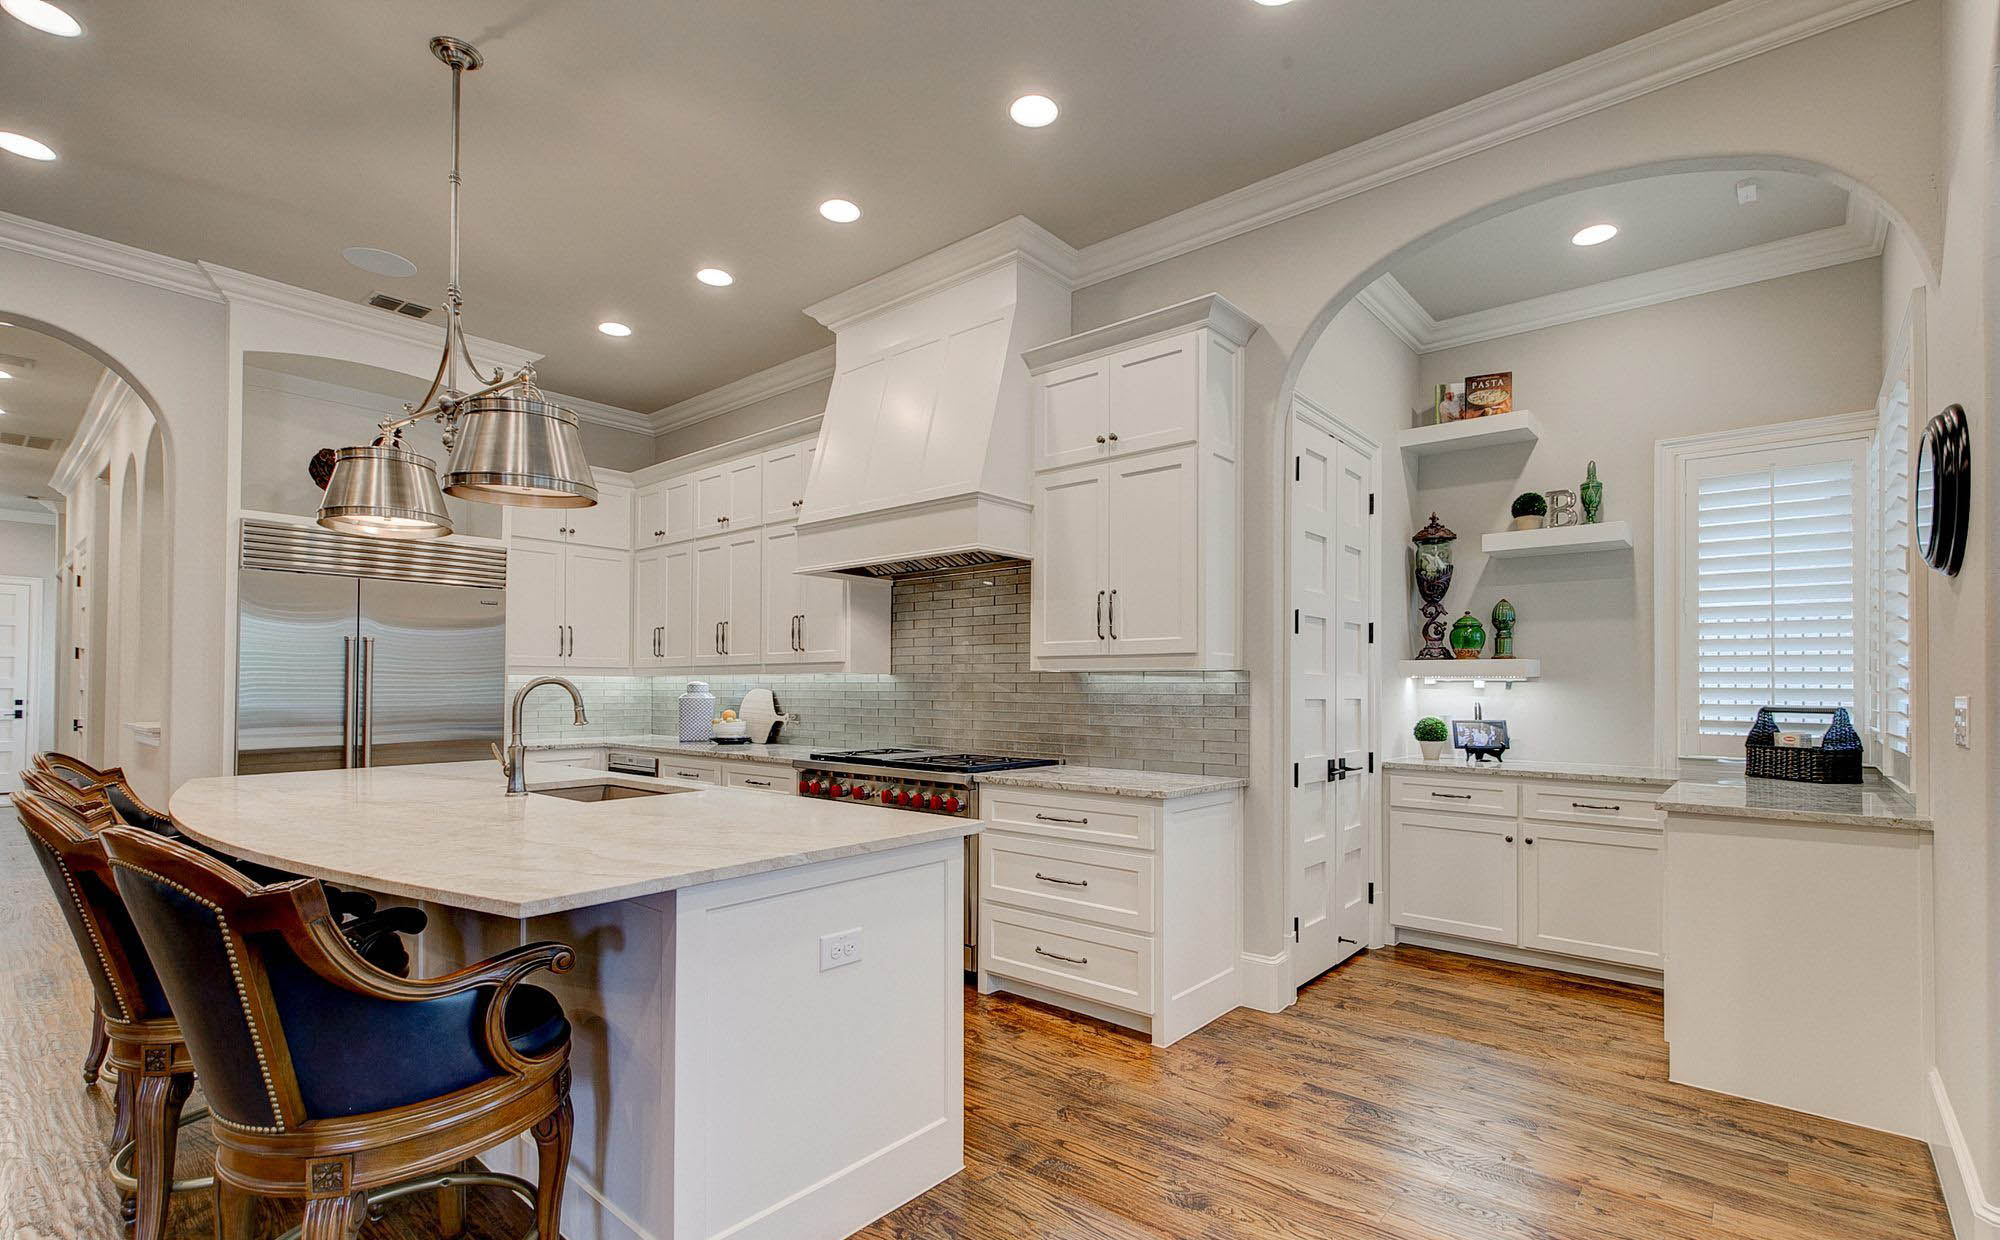 White granite with white marble quartz kitchen countertops and white cabinets. Rustic hardwood floors.